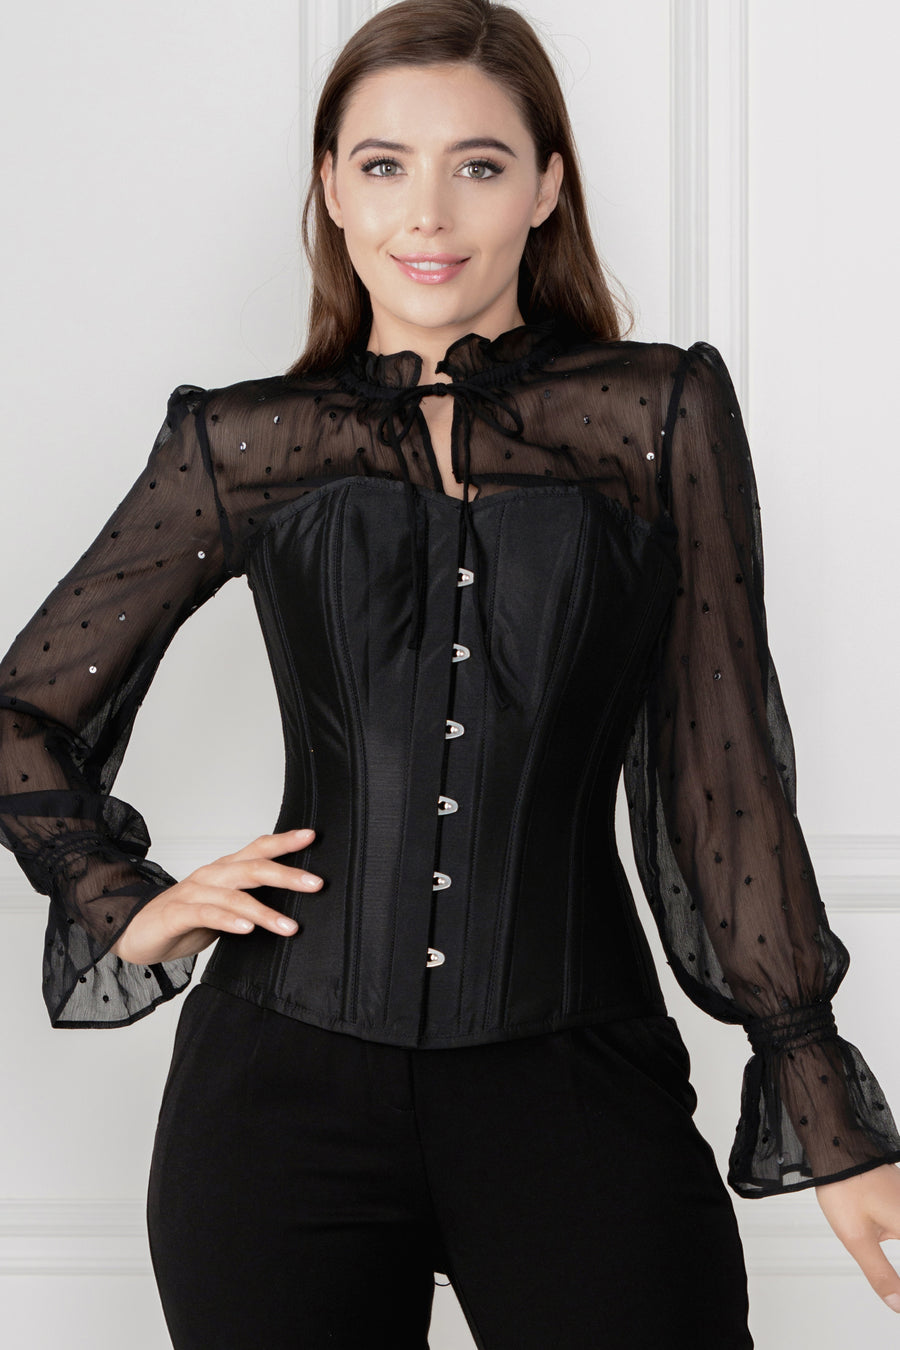 Black Sequin Overbust Sleeved Corset Top